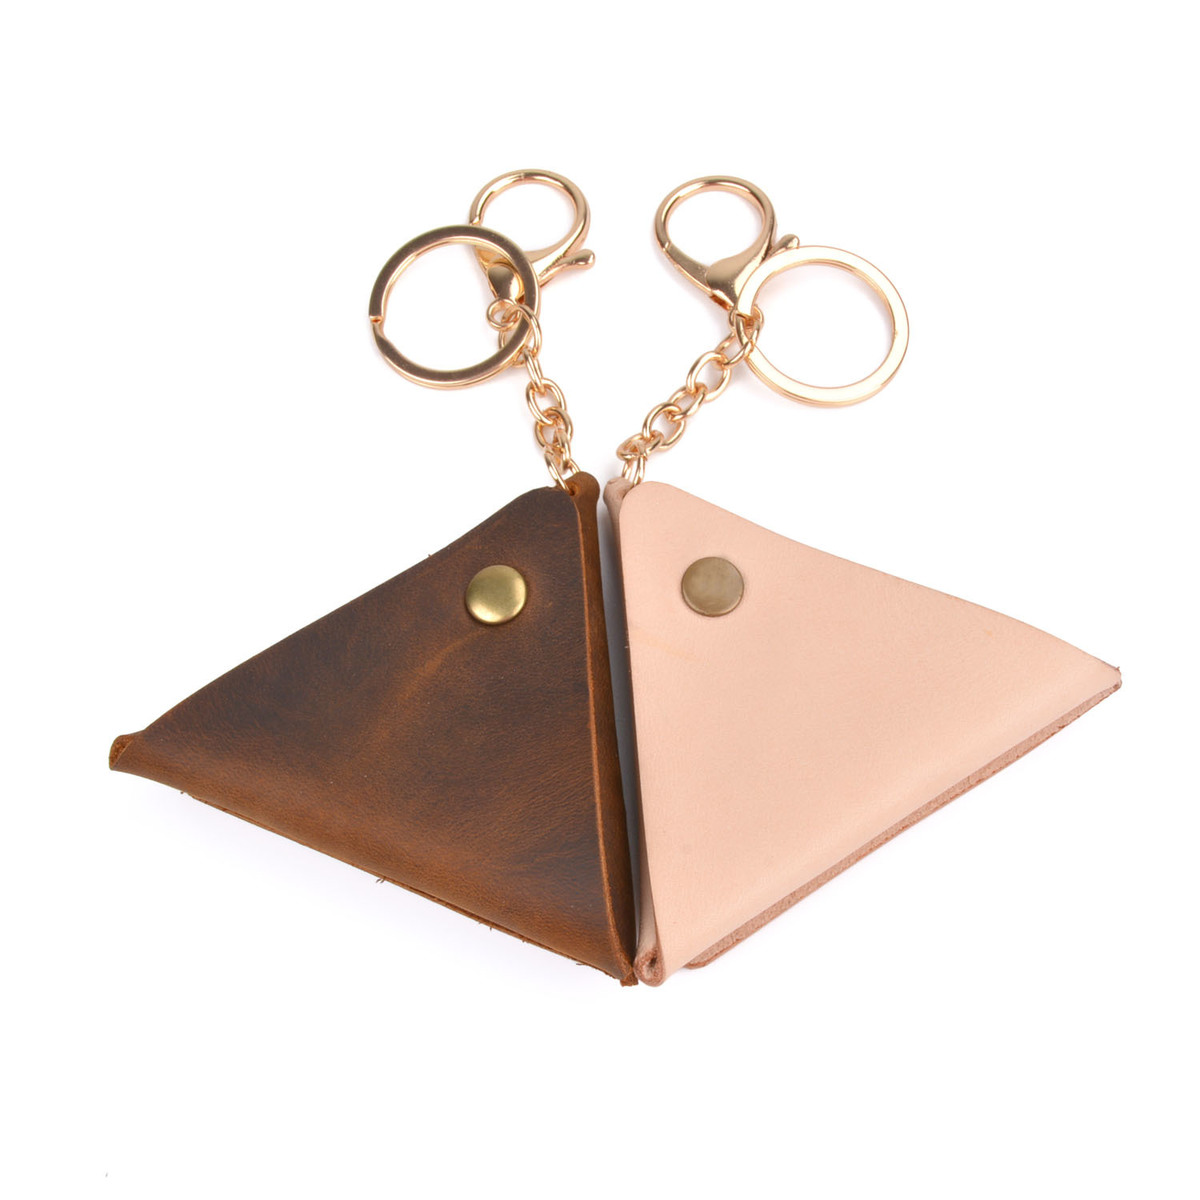 High-end Leather Classic Simple Triangle Handmade Coin Purse With Key Ring Hasp Practical Cool Personality Cow Leather Small Bag